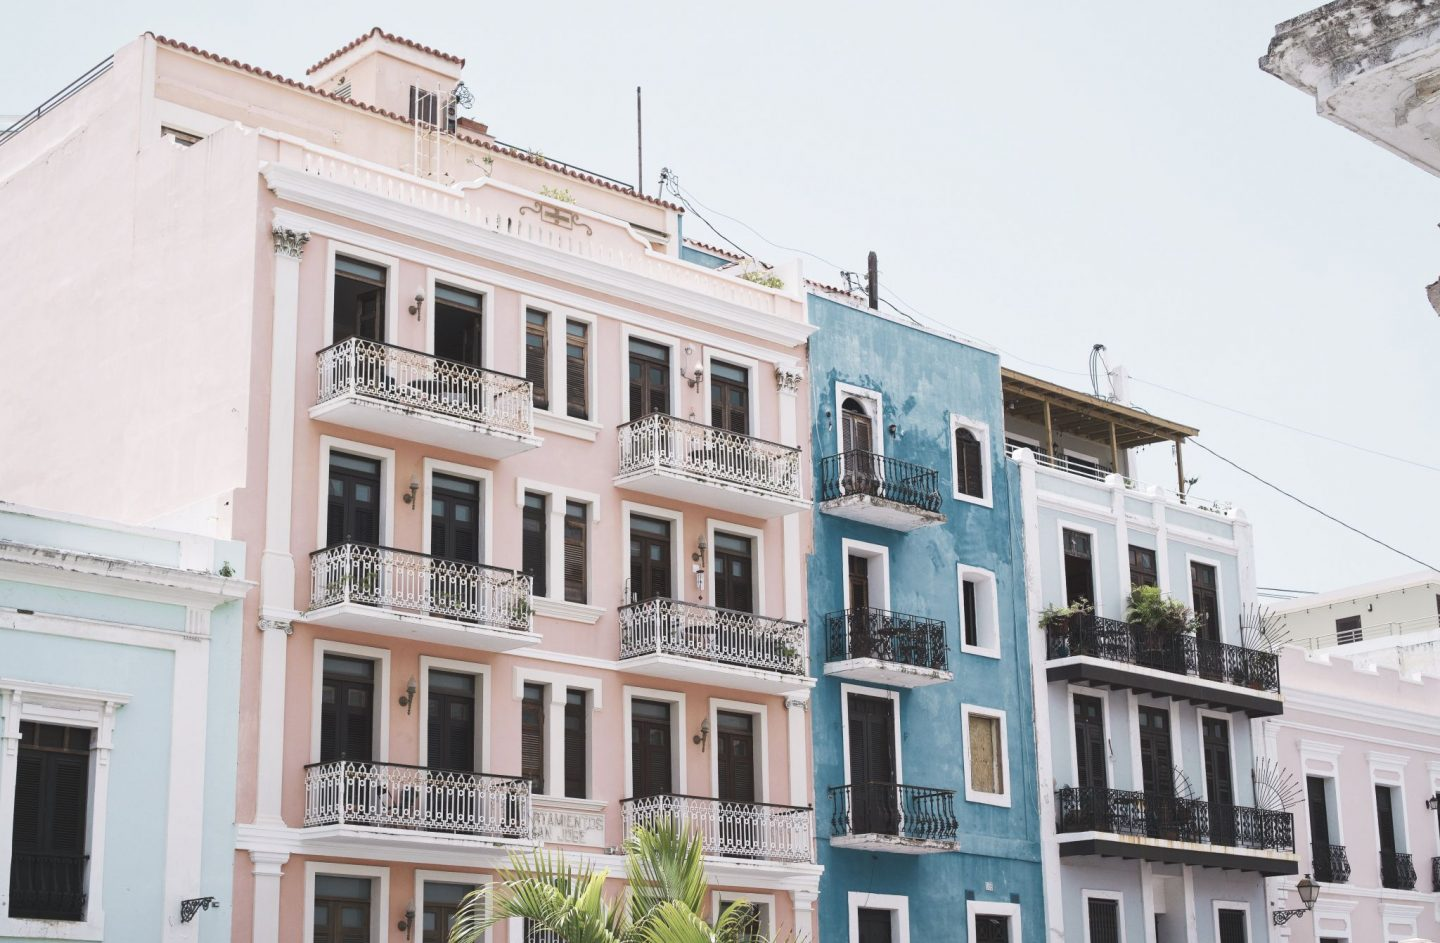 Old San Juan, Puerto Rico is one of the world's most colourful cities